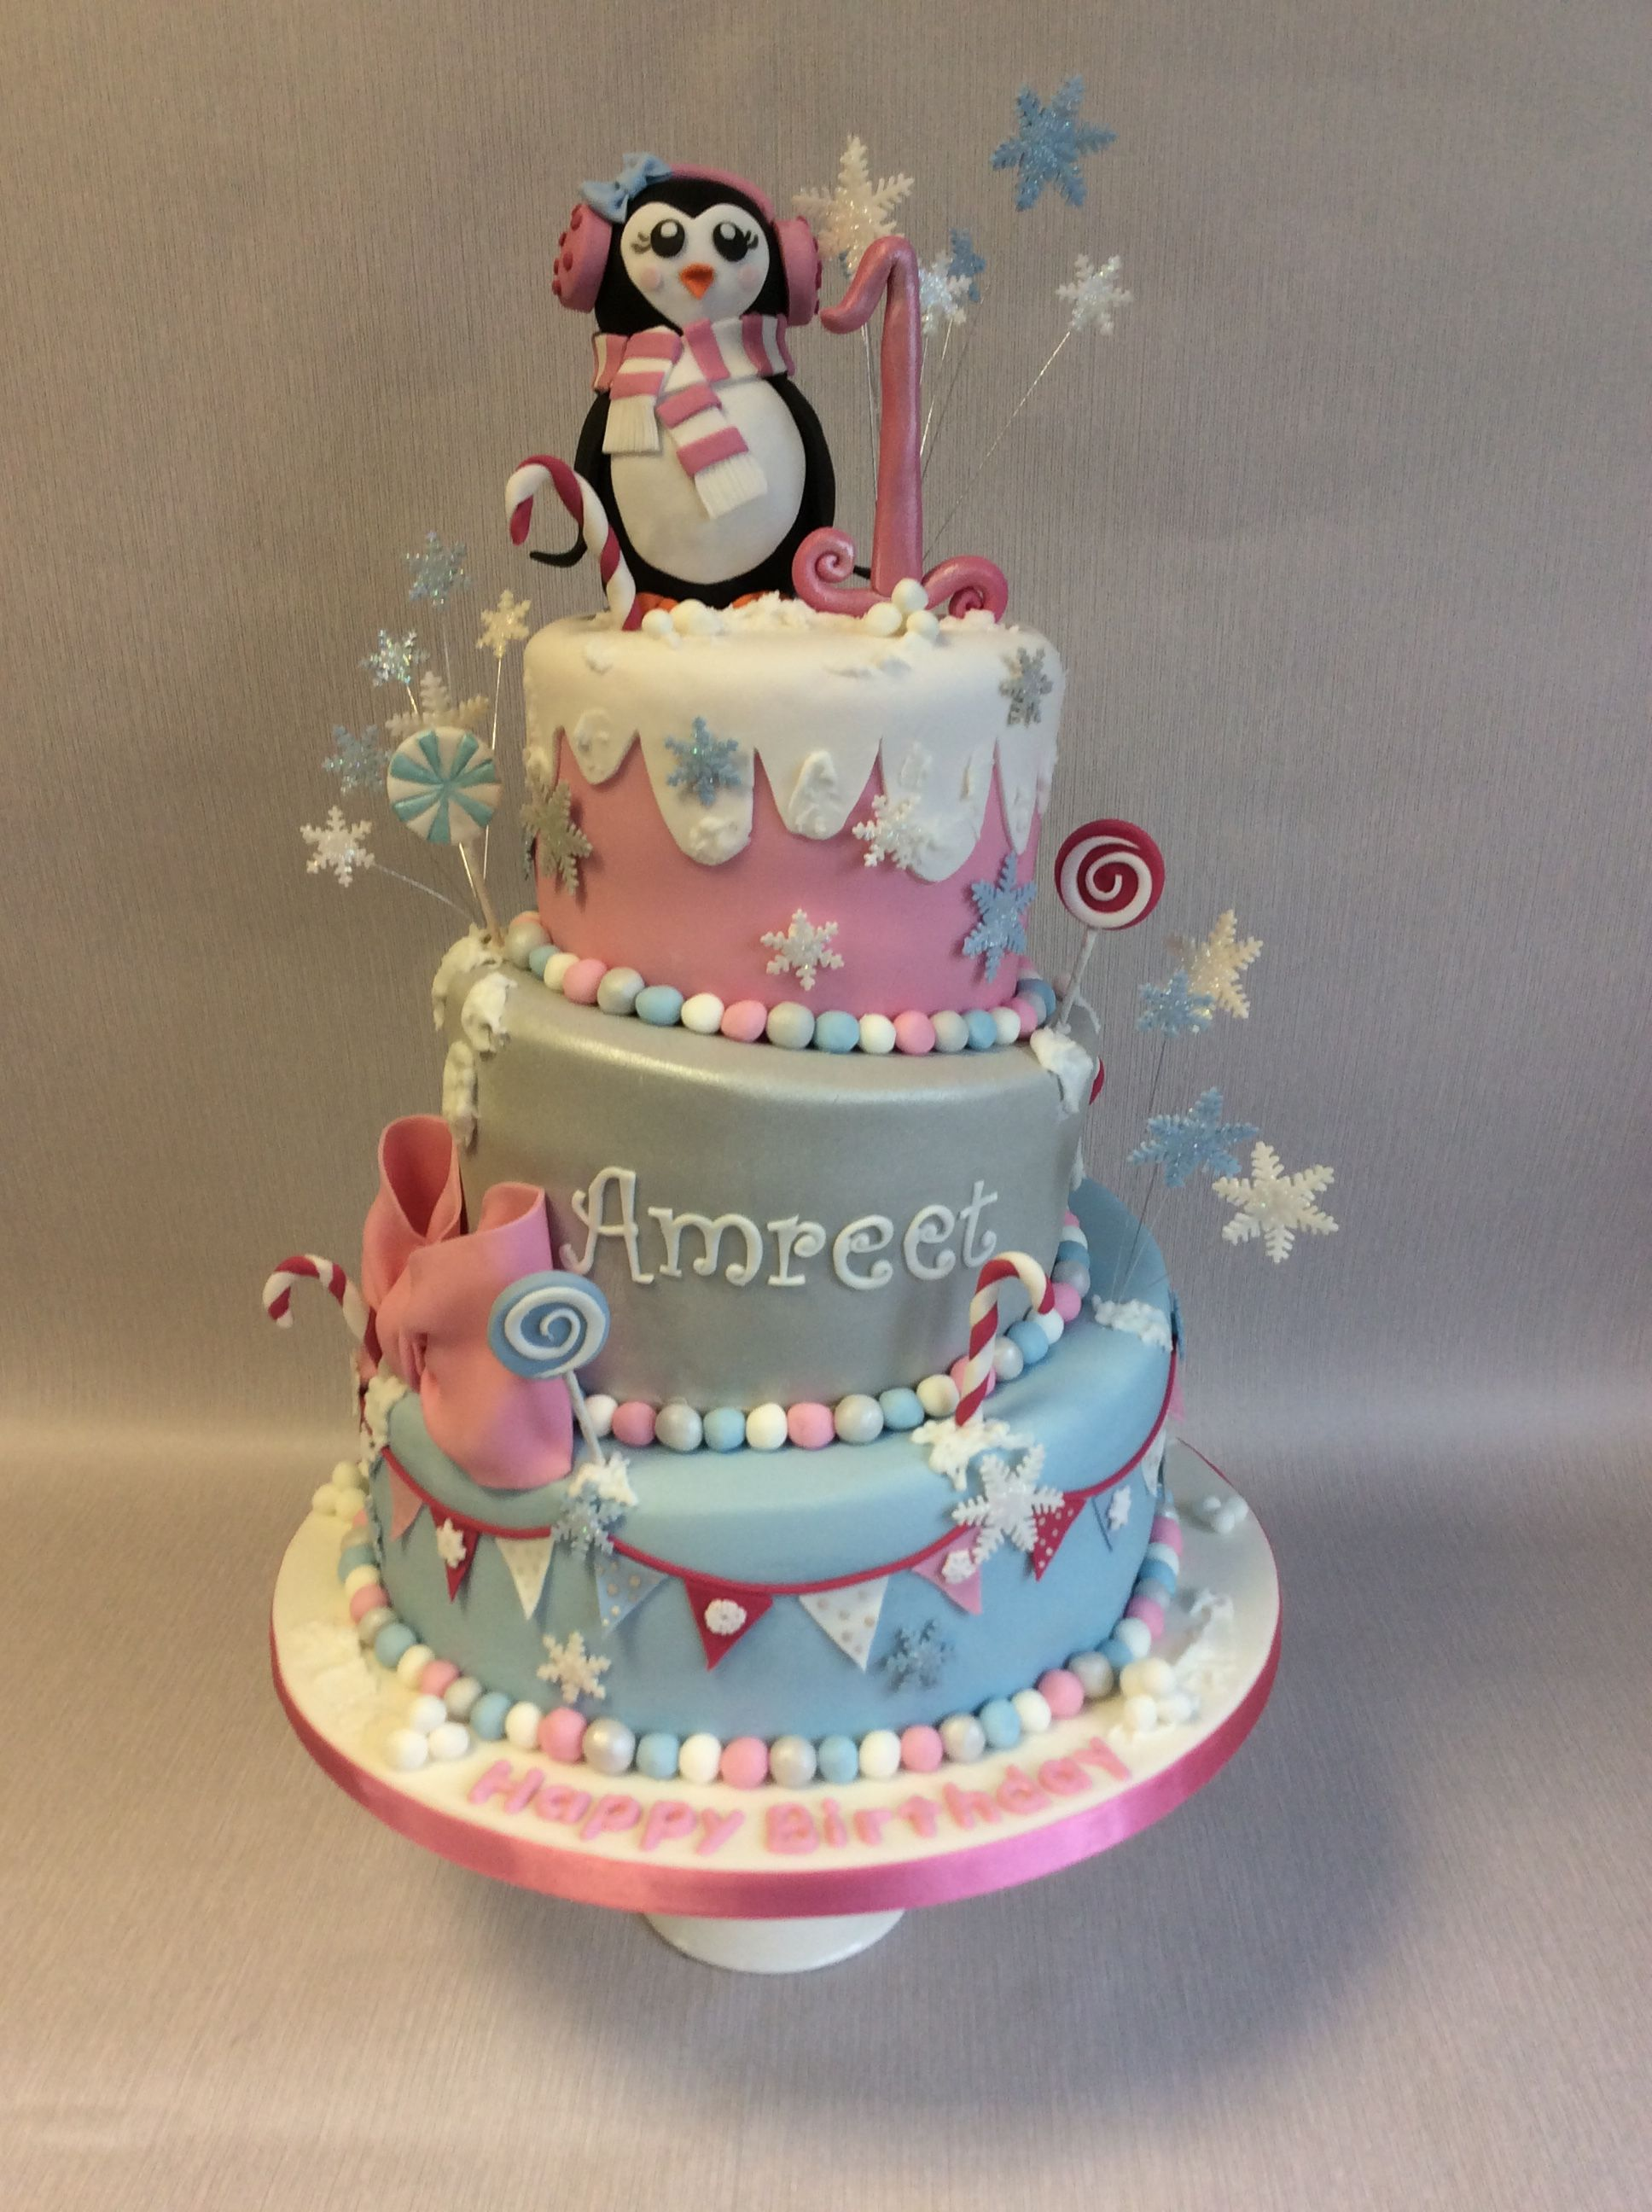 Penguin Party 3 tier wonky 1st birthday cake for a December birthday